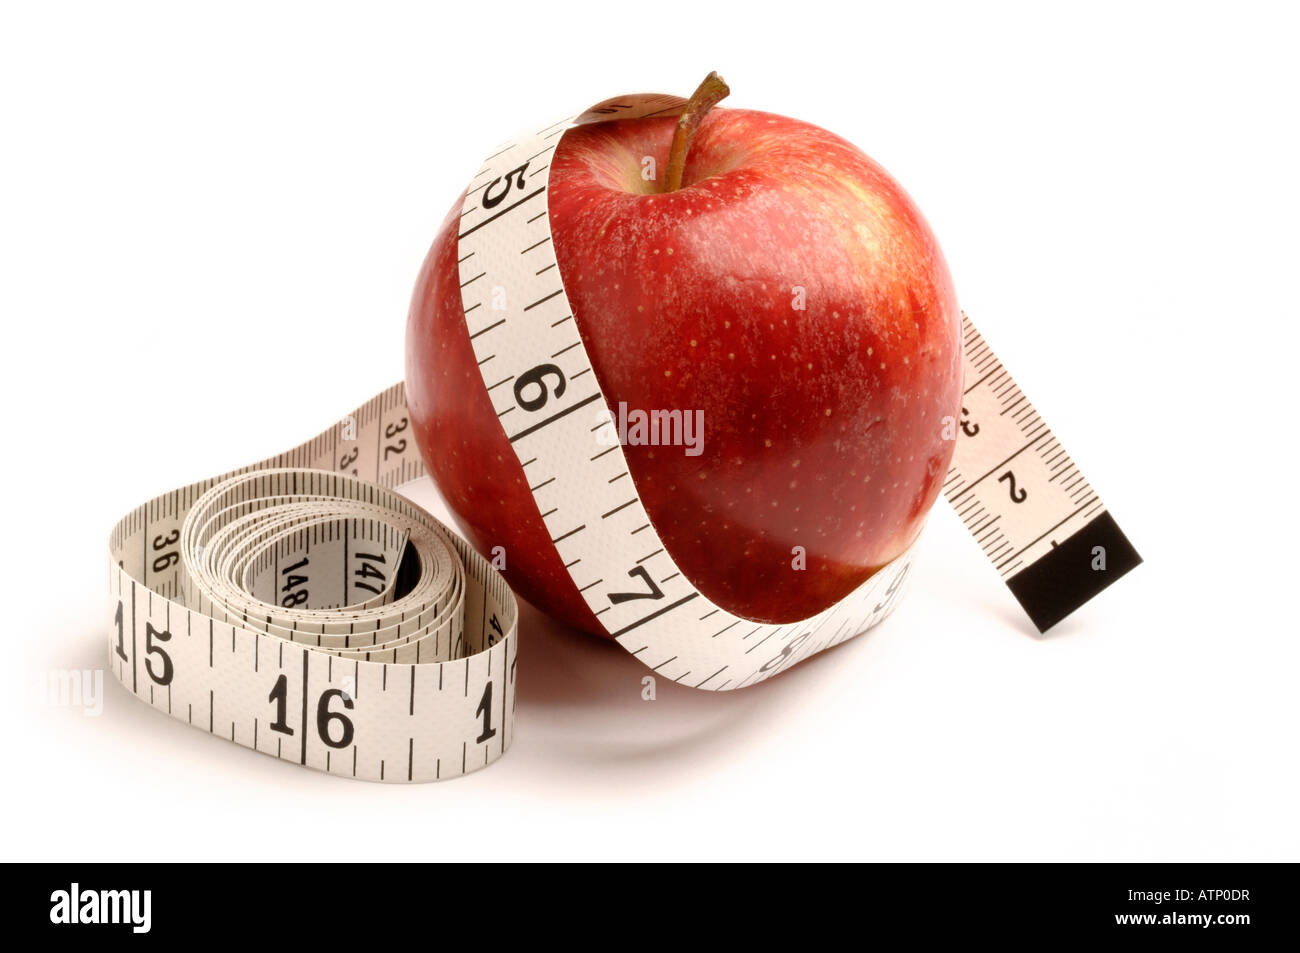 Red apple and tape measure - Stock Image